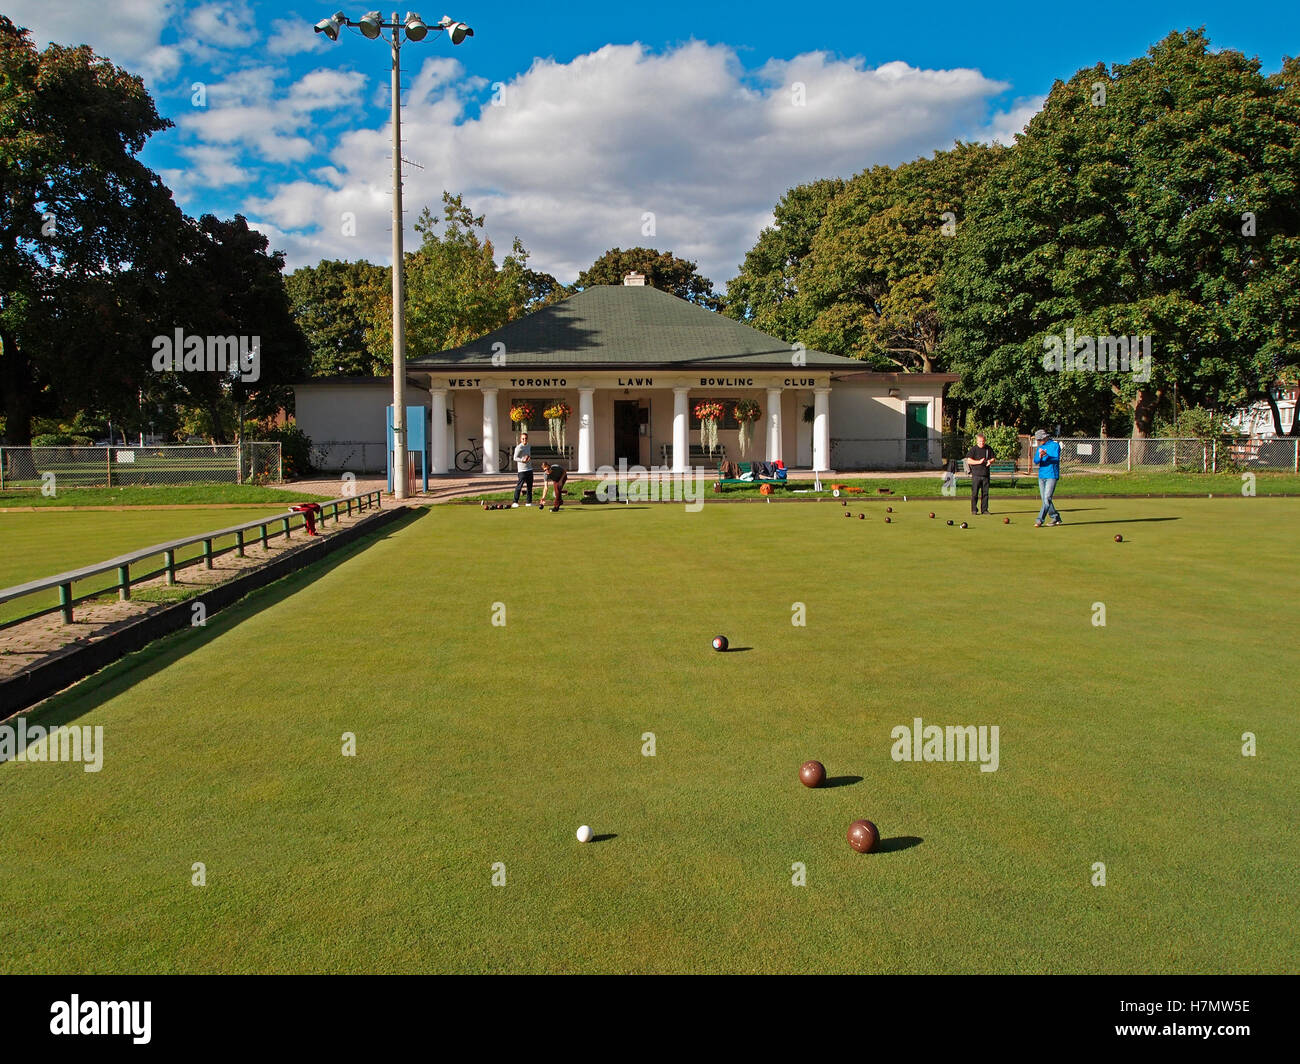 Bowlers at West Toronto Bowling Club in front of their iconic clubhouse – it is in the style of a classical Greek - Stock Image